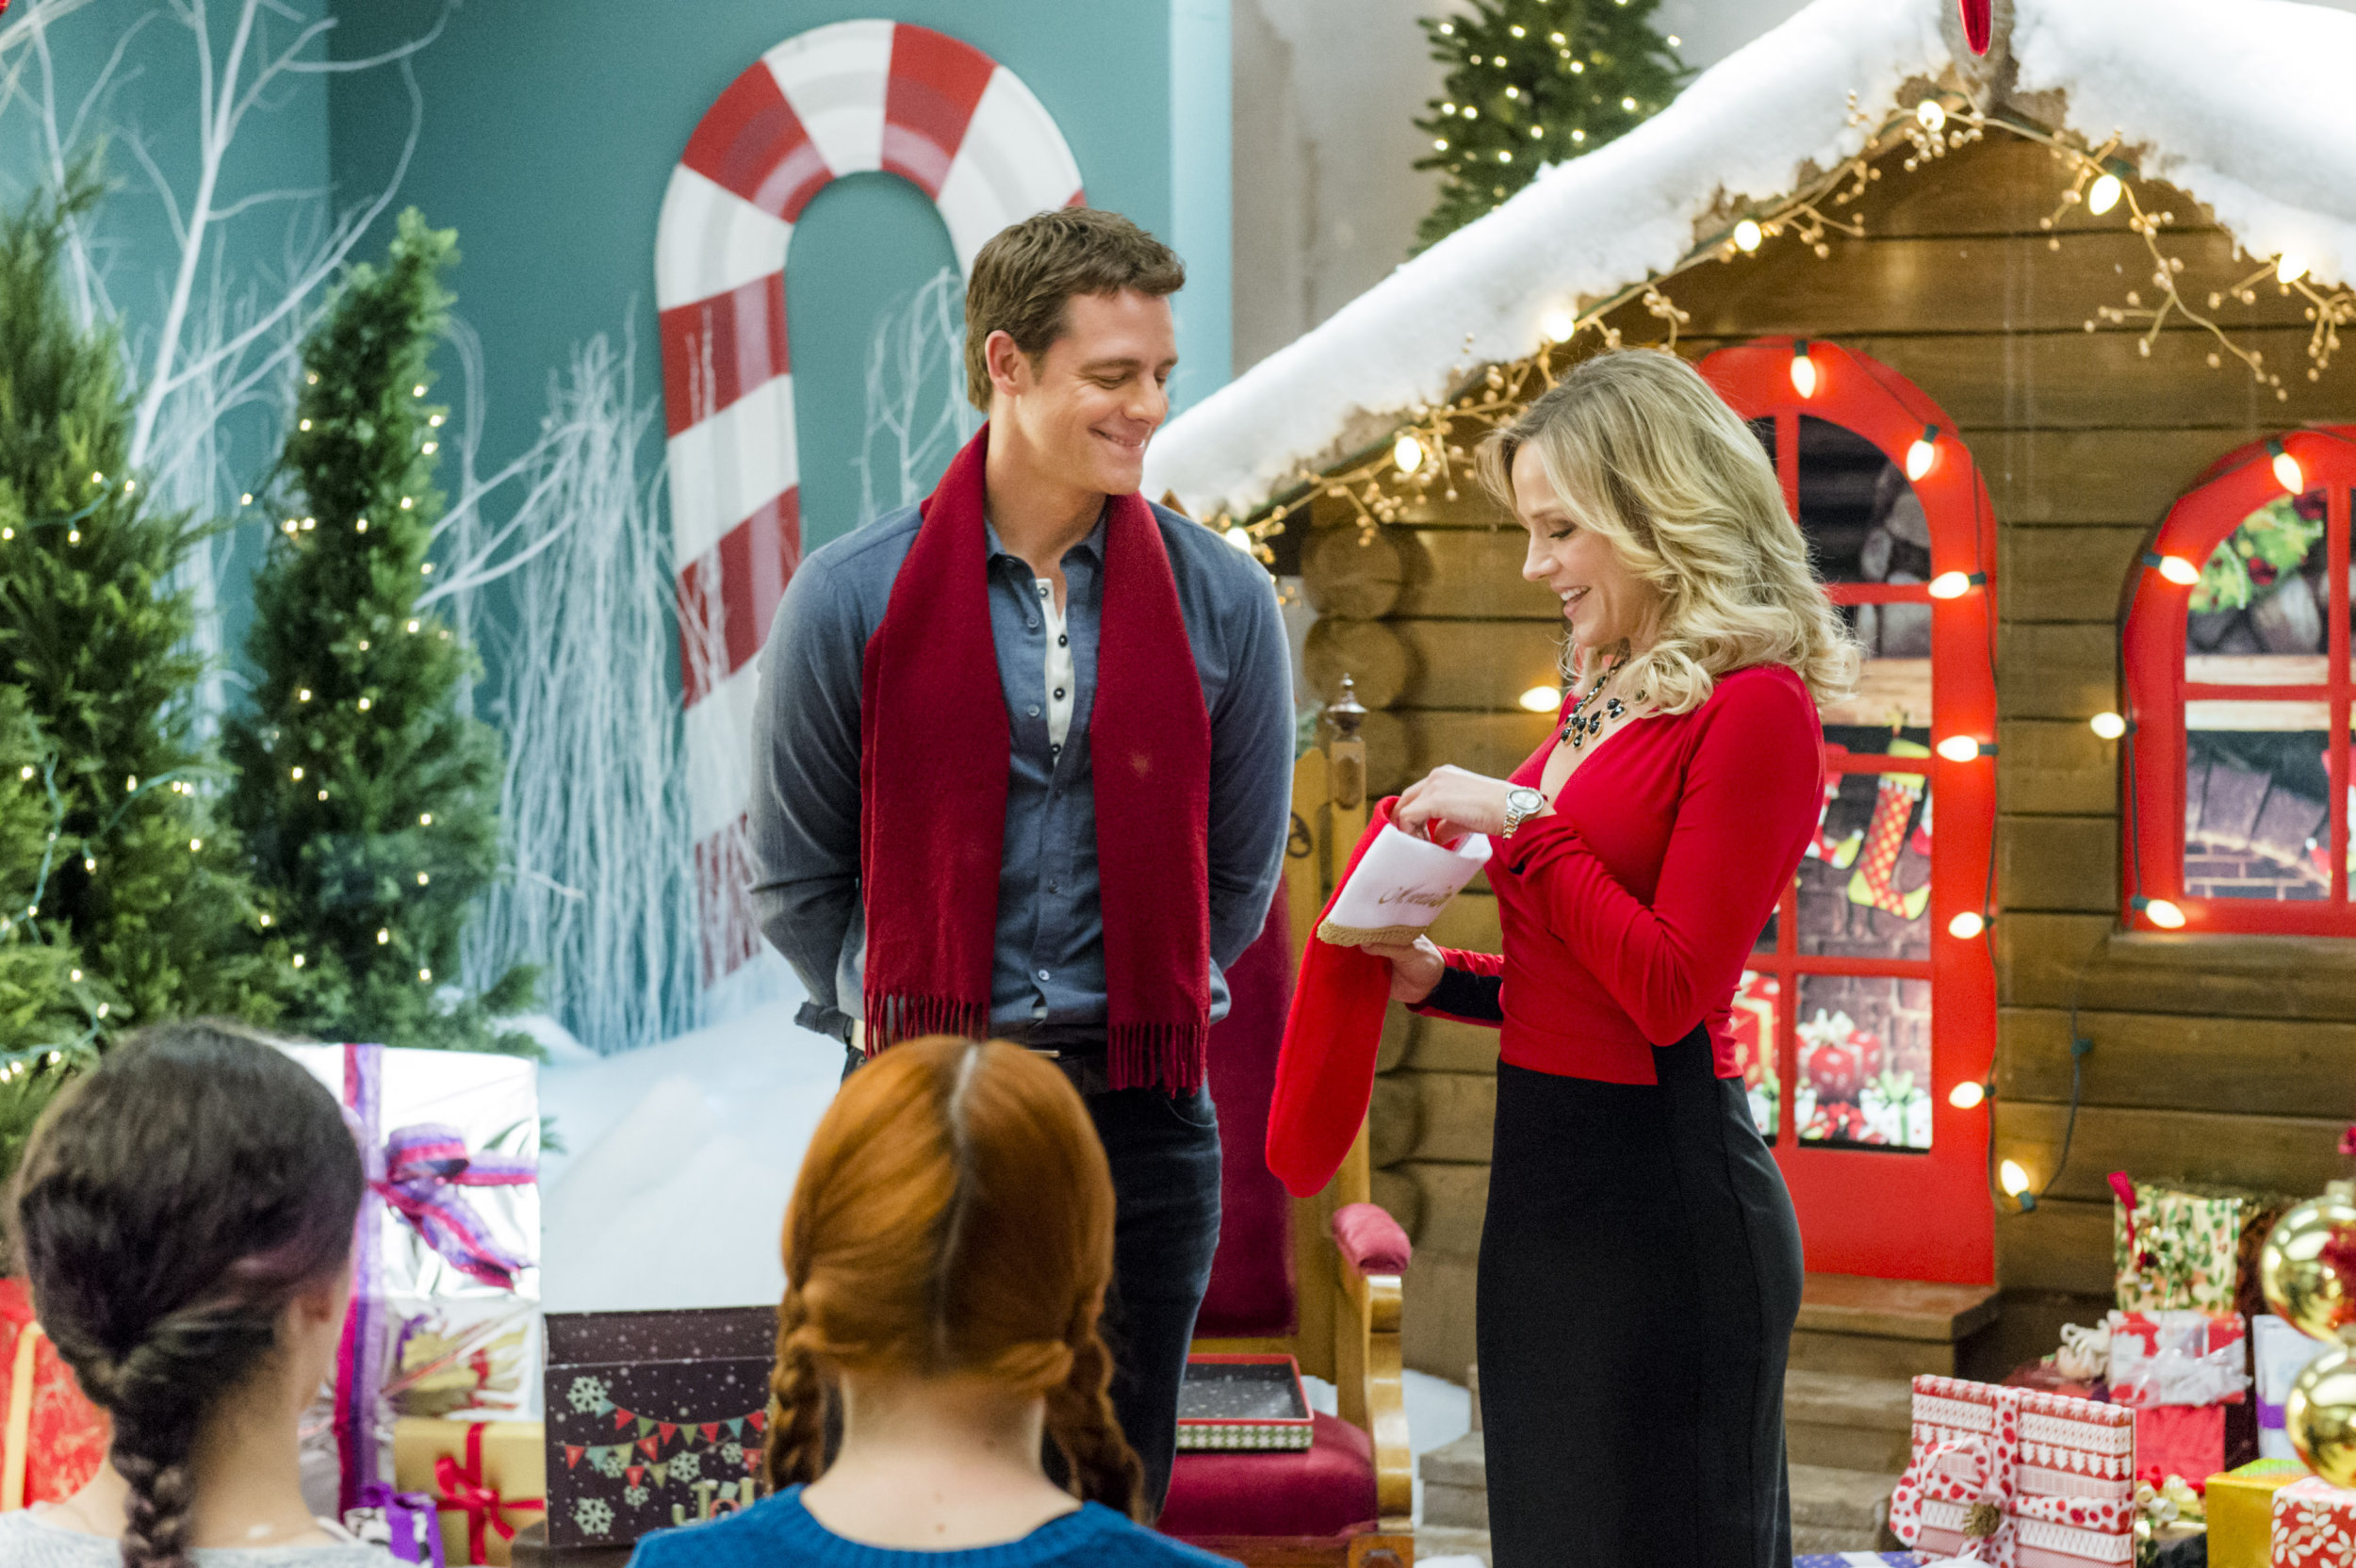 Hallmark channel schedule january 2015 share the knownledge for Christmas movies on cable tv tonight